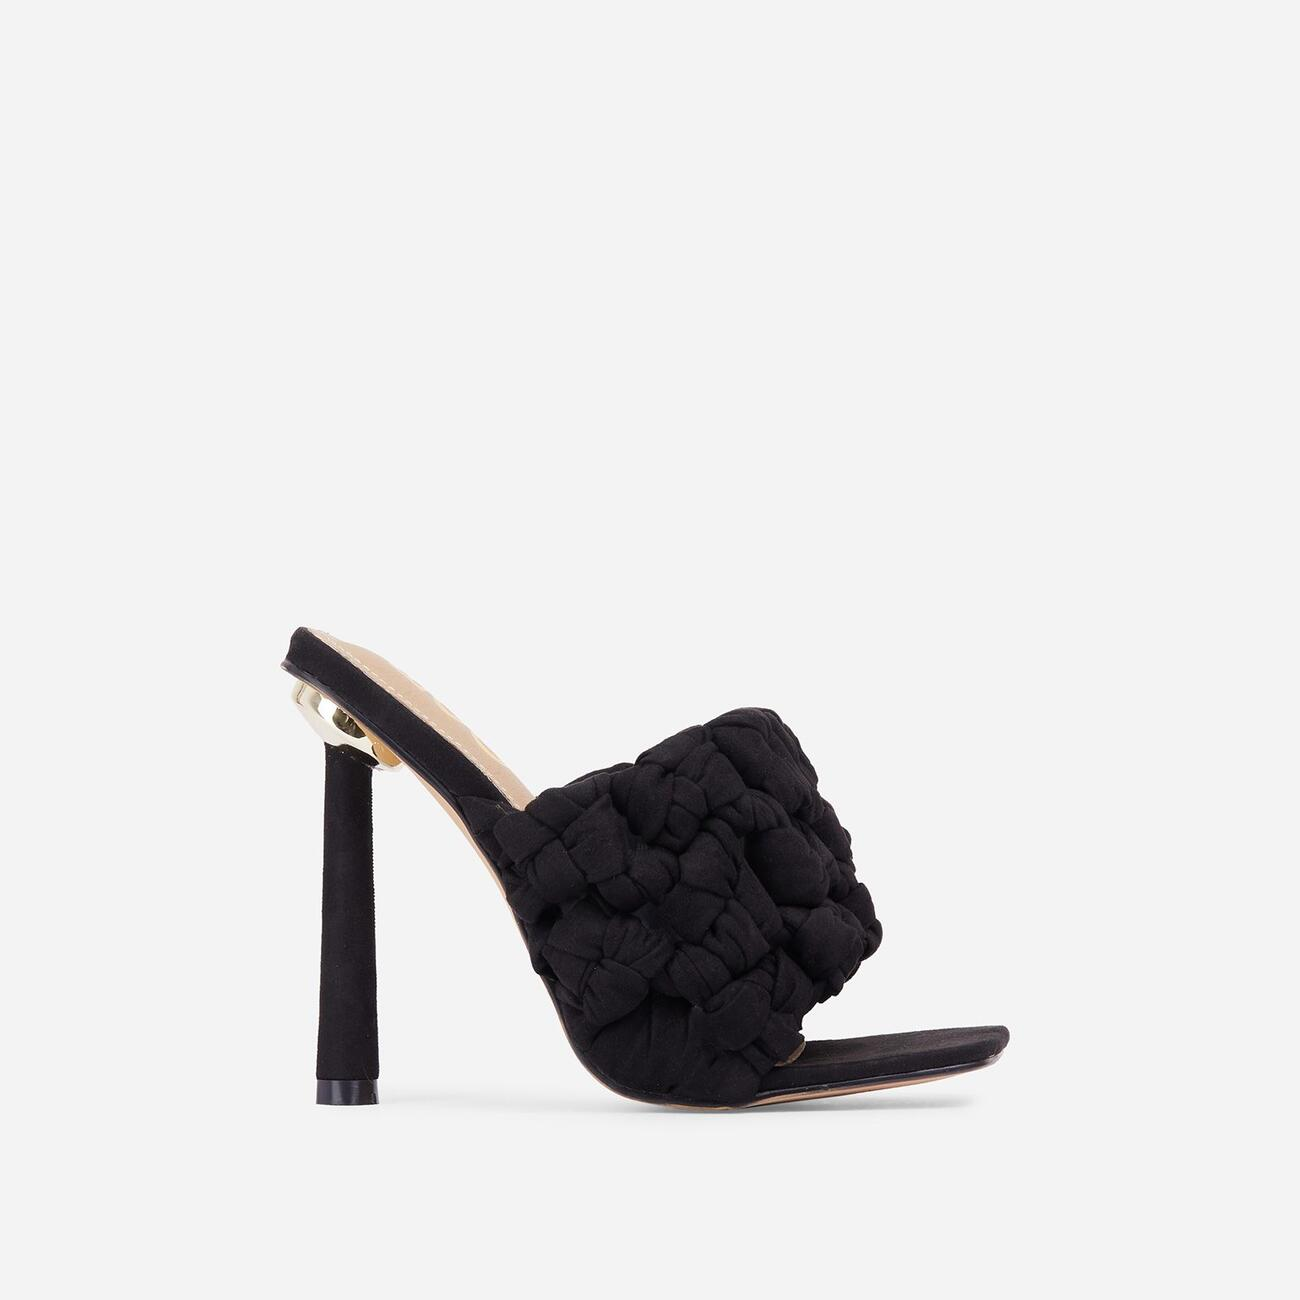 K-O Knotted Detail Square Open Toe Heel Mule In Black Faux Suede Image 1